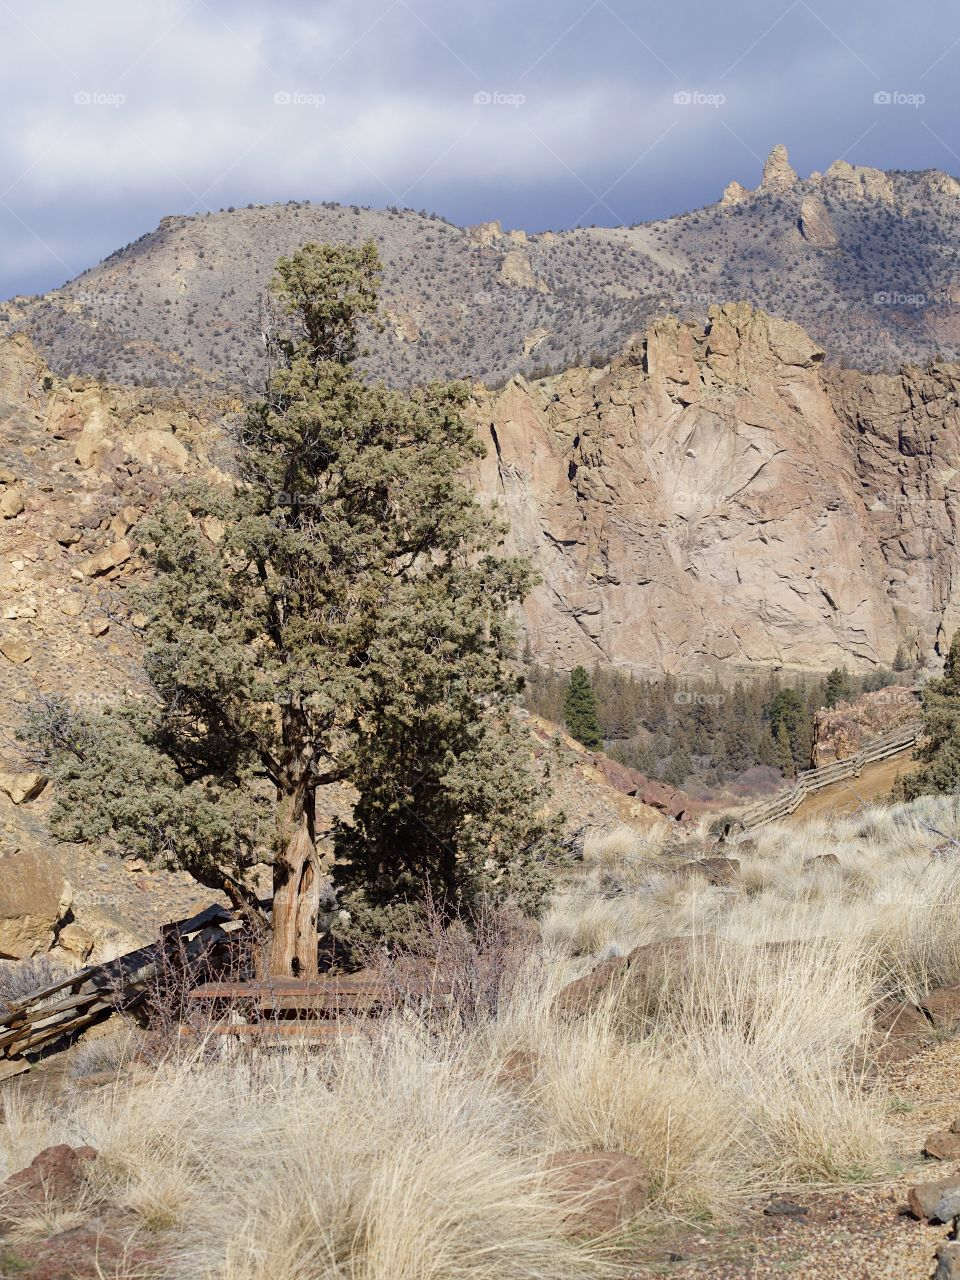 The jagged geology of Smith Rock State Park in Central Oregon with wild grasses and juniper trees in the foreground and stormy skies overhead on a winter day.